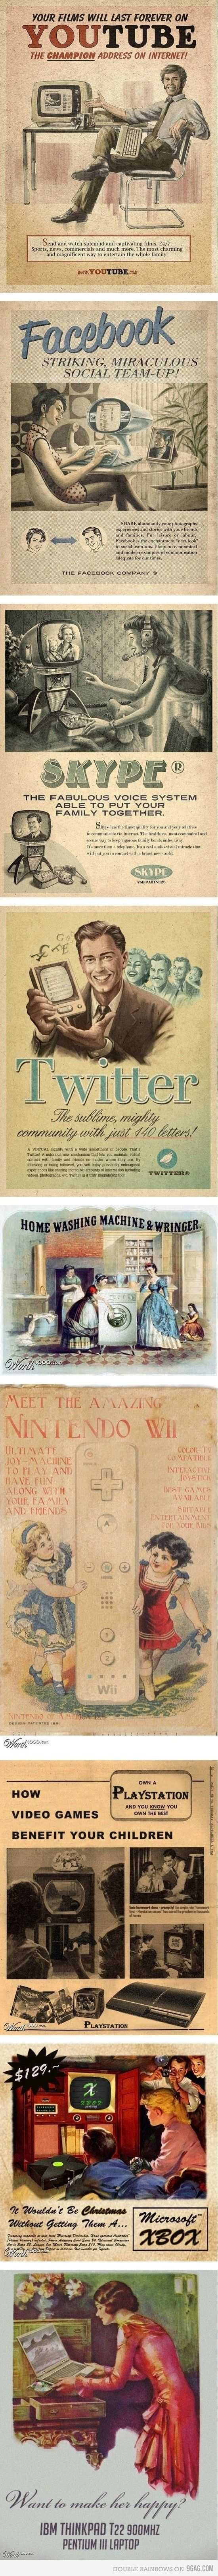 Vintage Makeover Advertisement | Things for Geeks